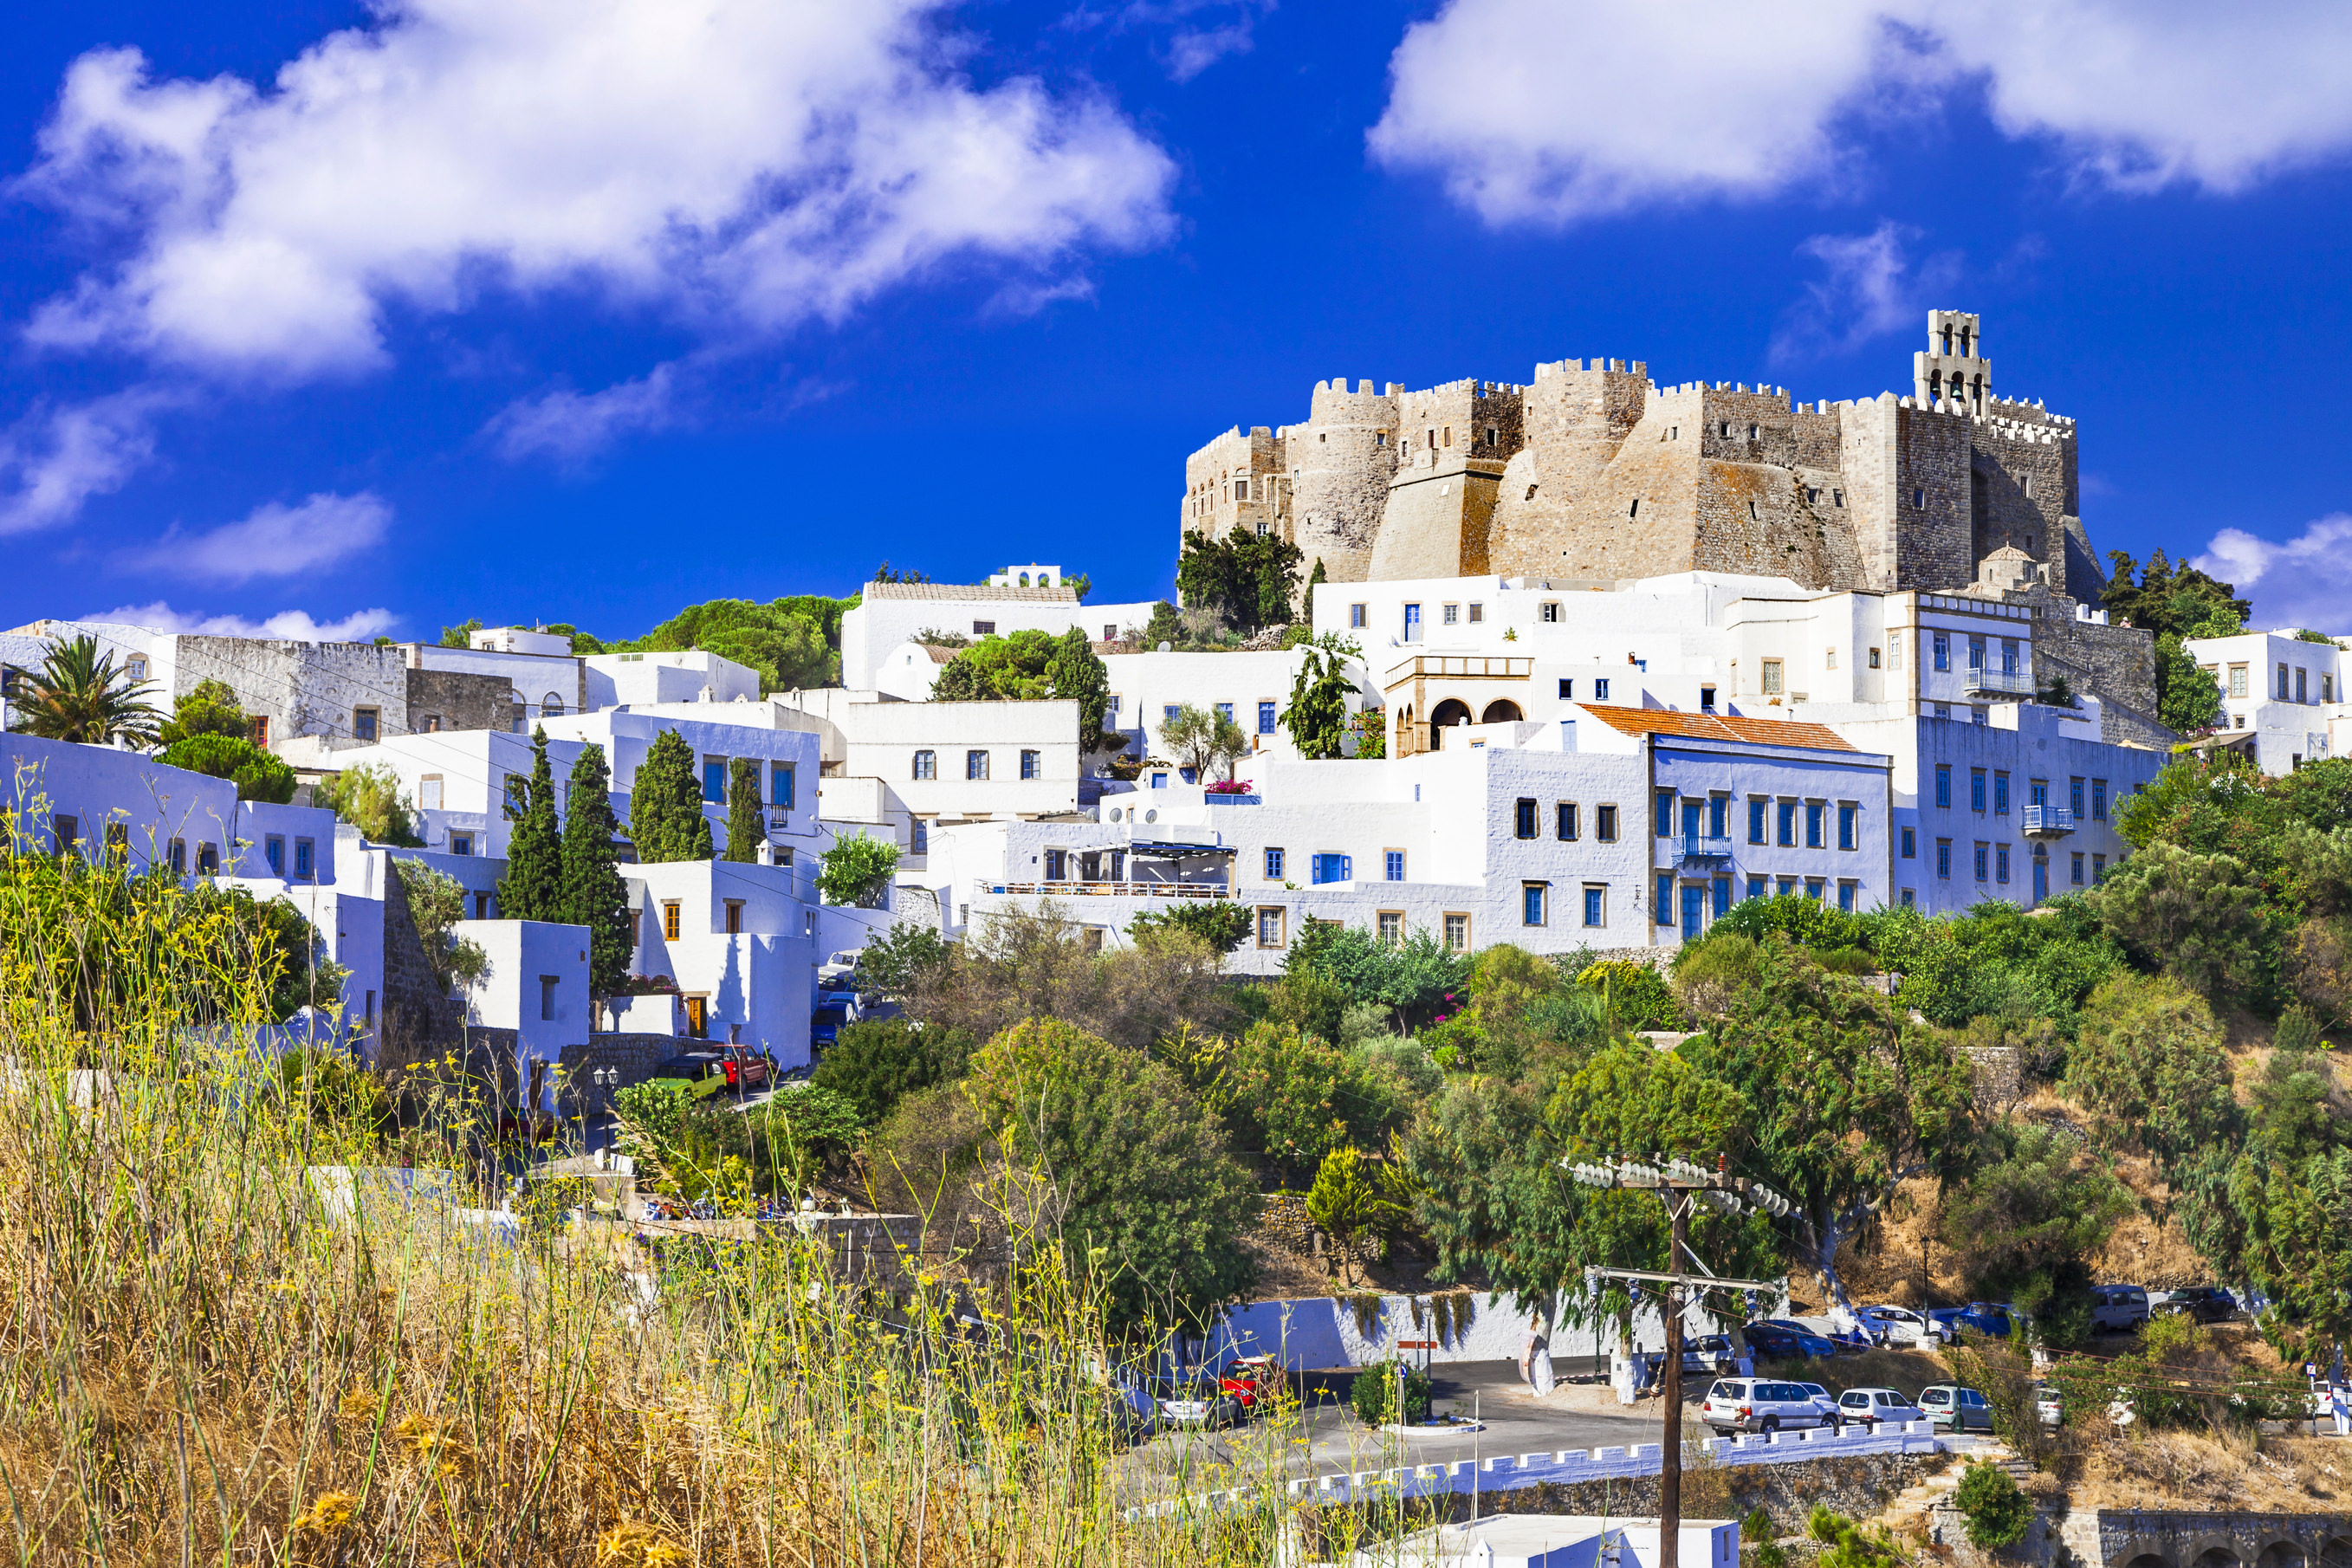 View of Monastery of st. John in Patmos